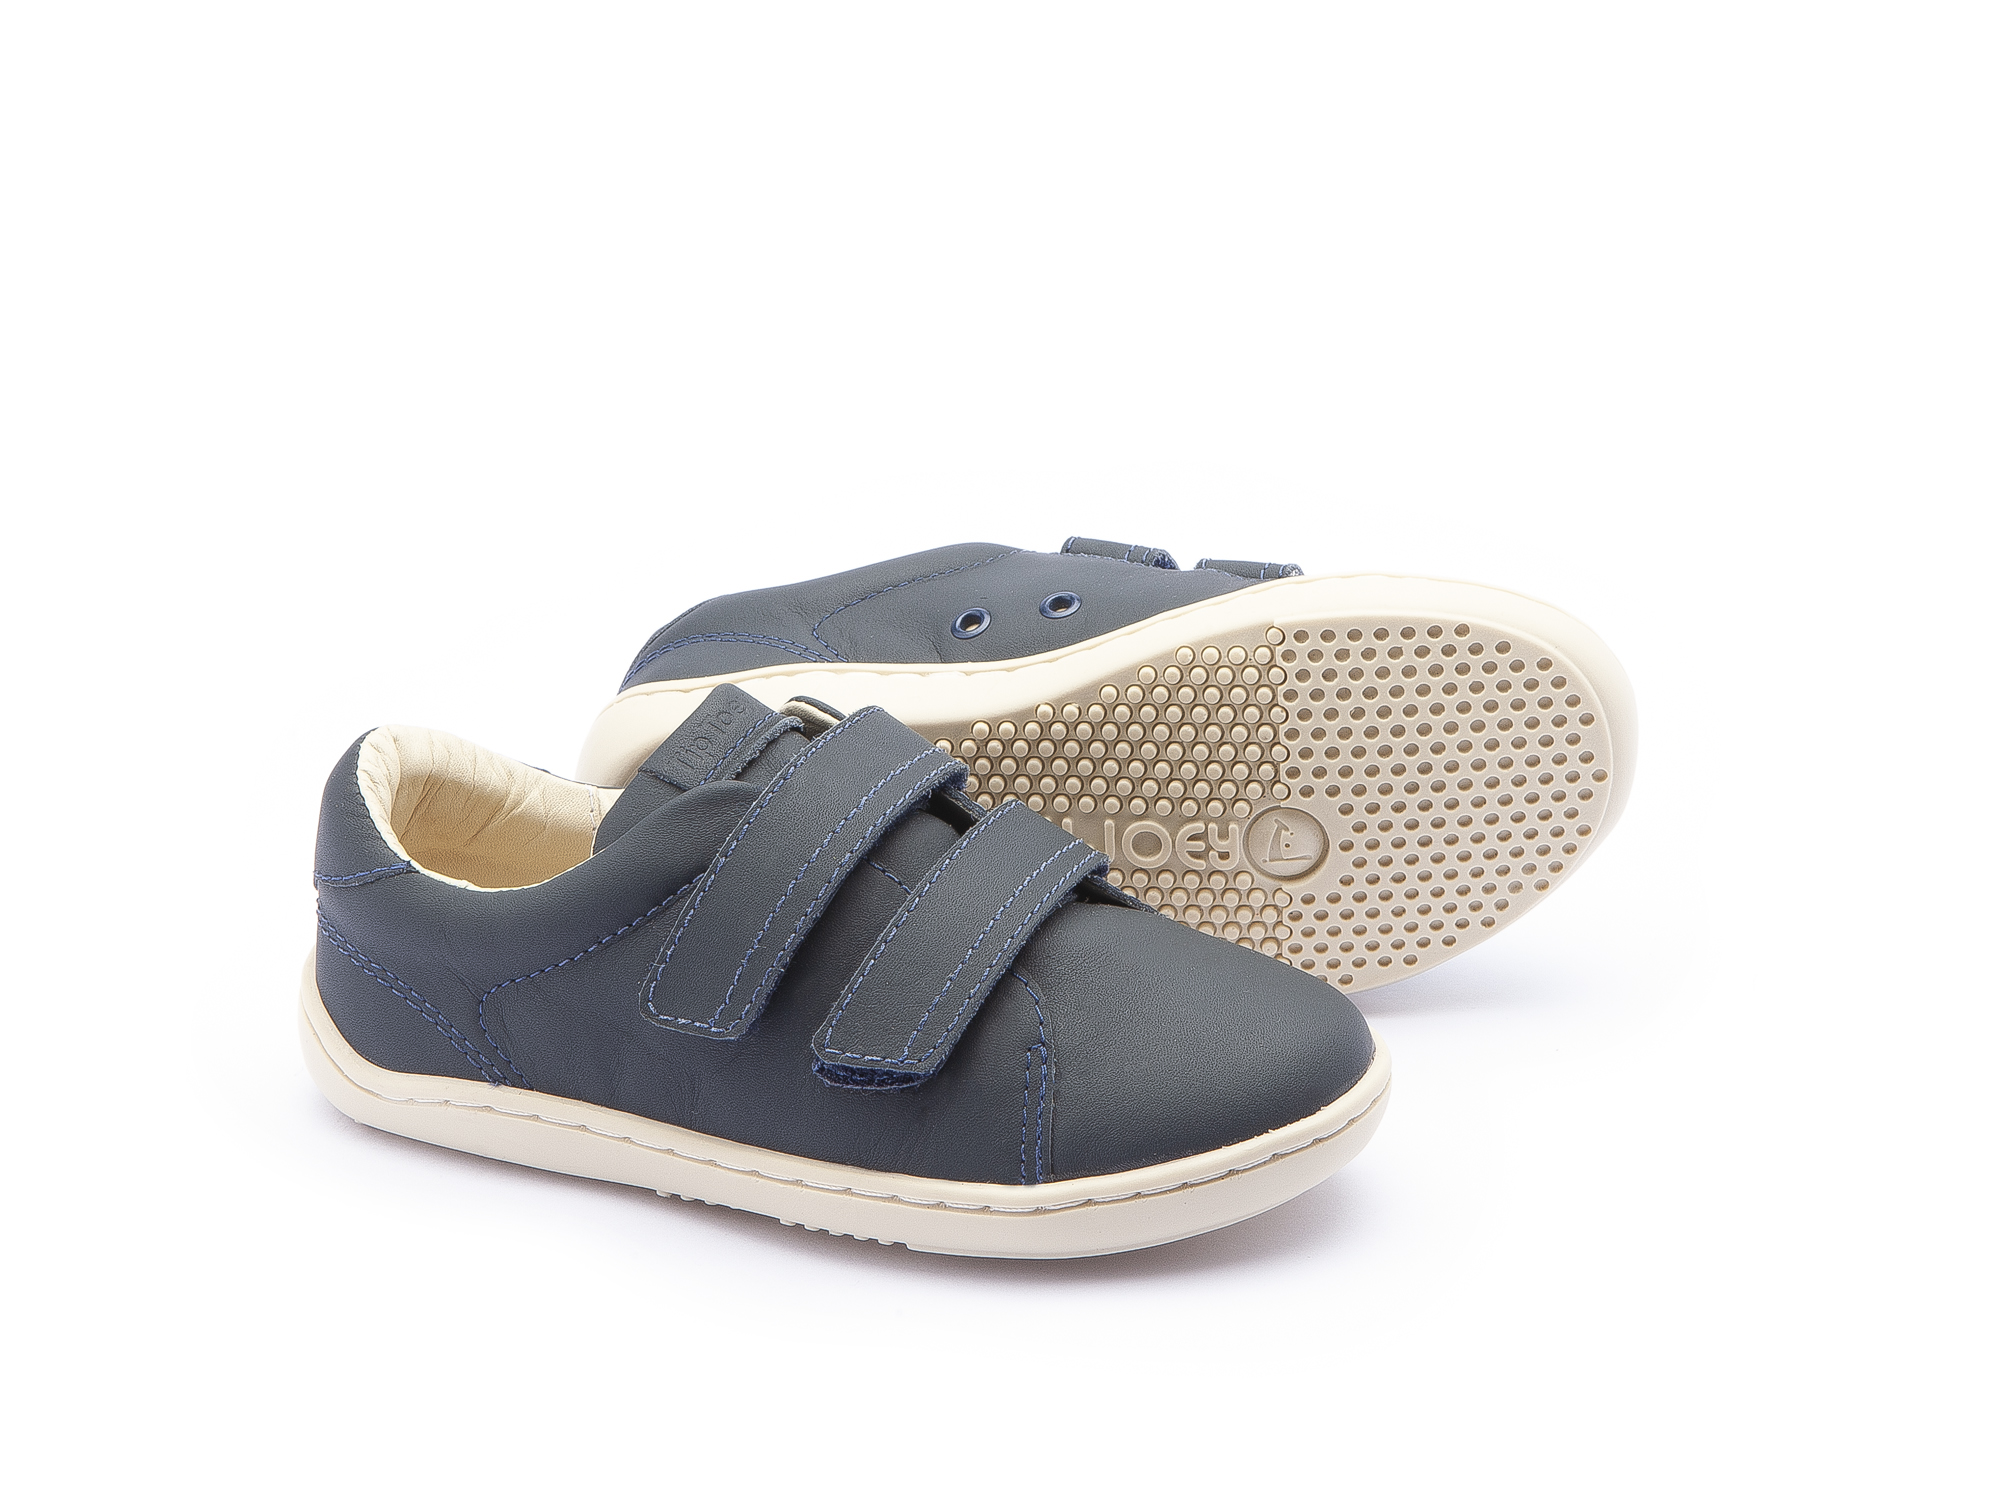 Sneaker Casual Little Guide Navy  Toddler 2 à 4 anos - 2